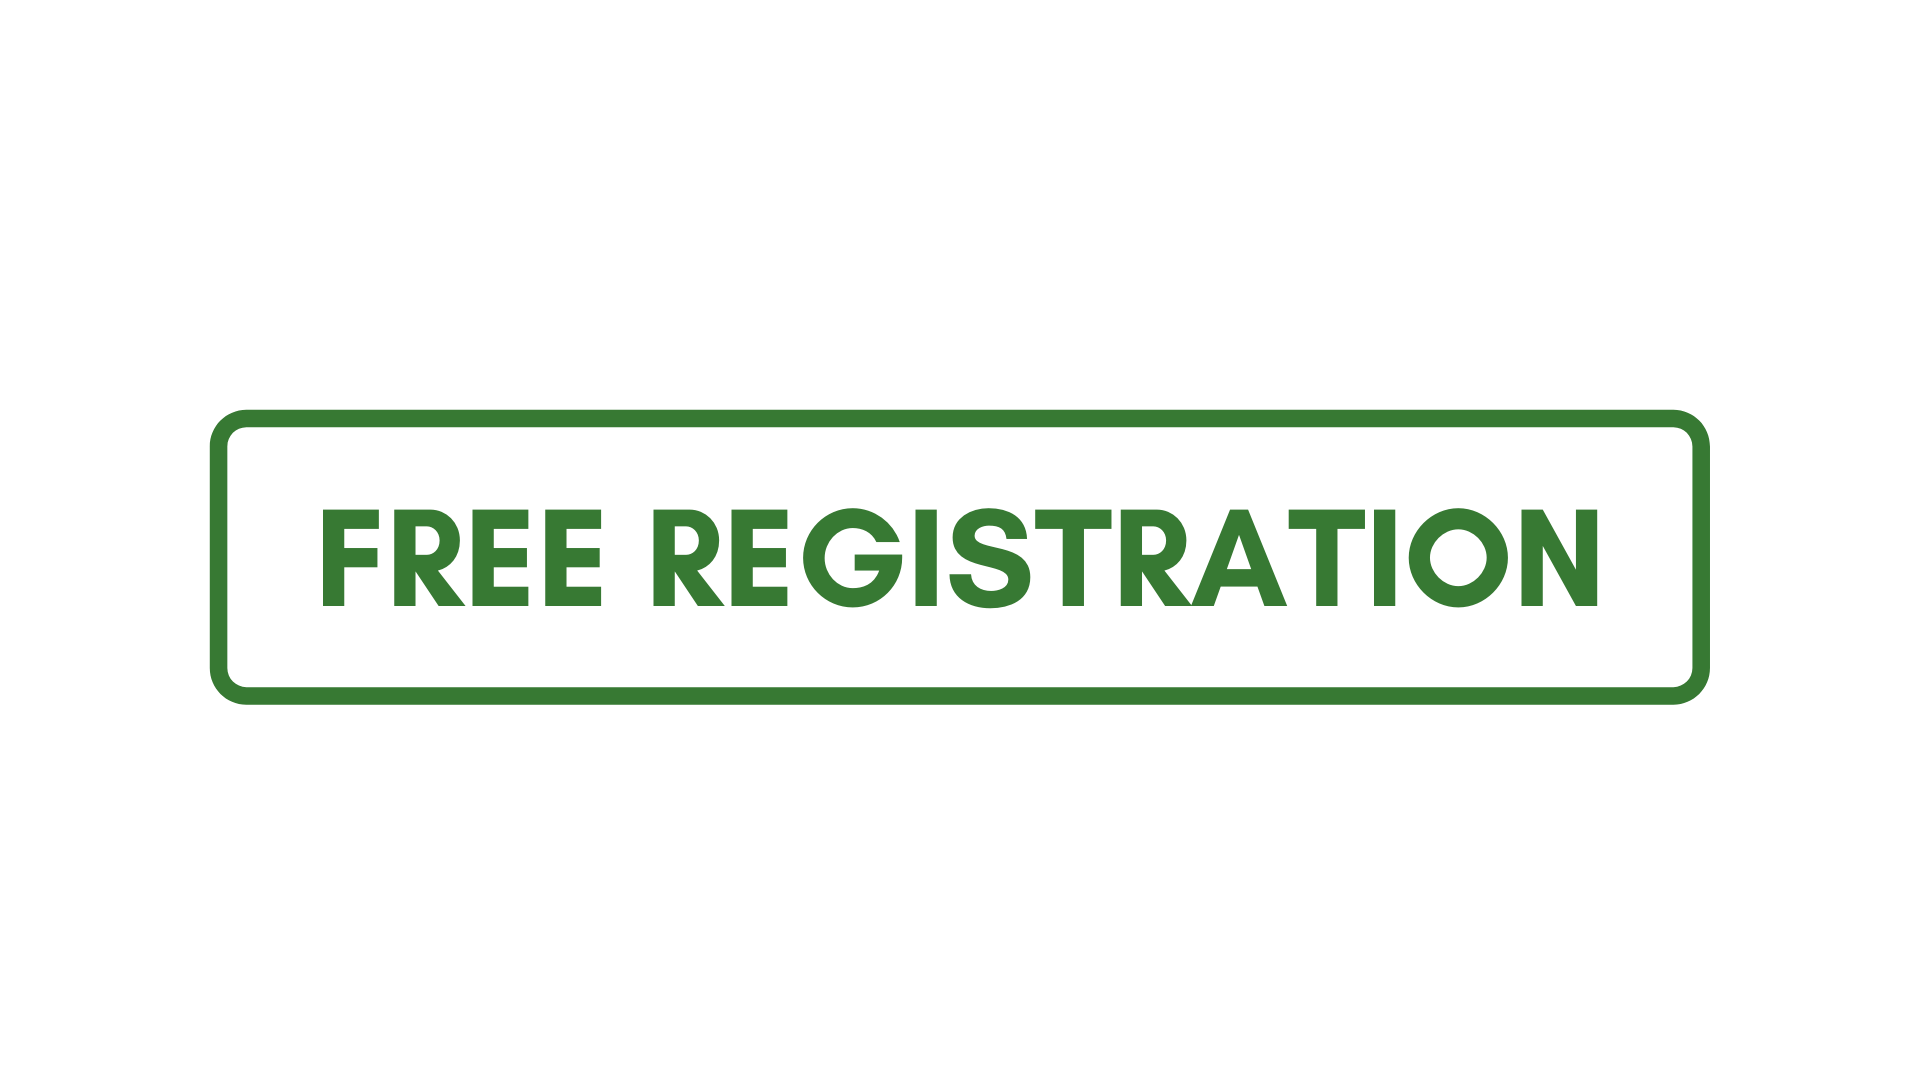 button for free registration